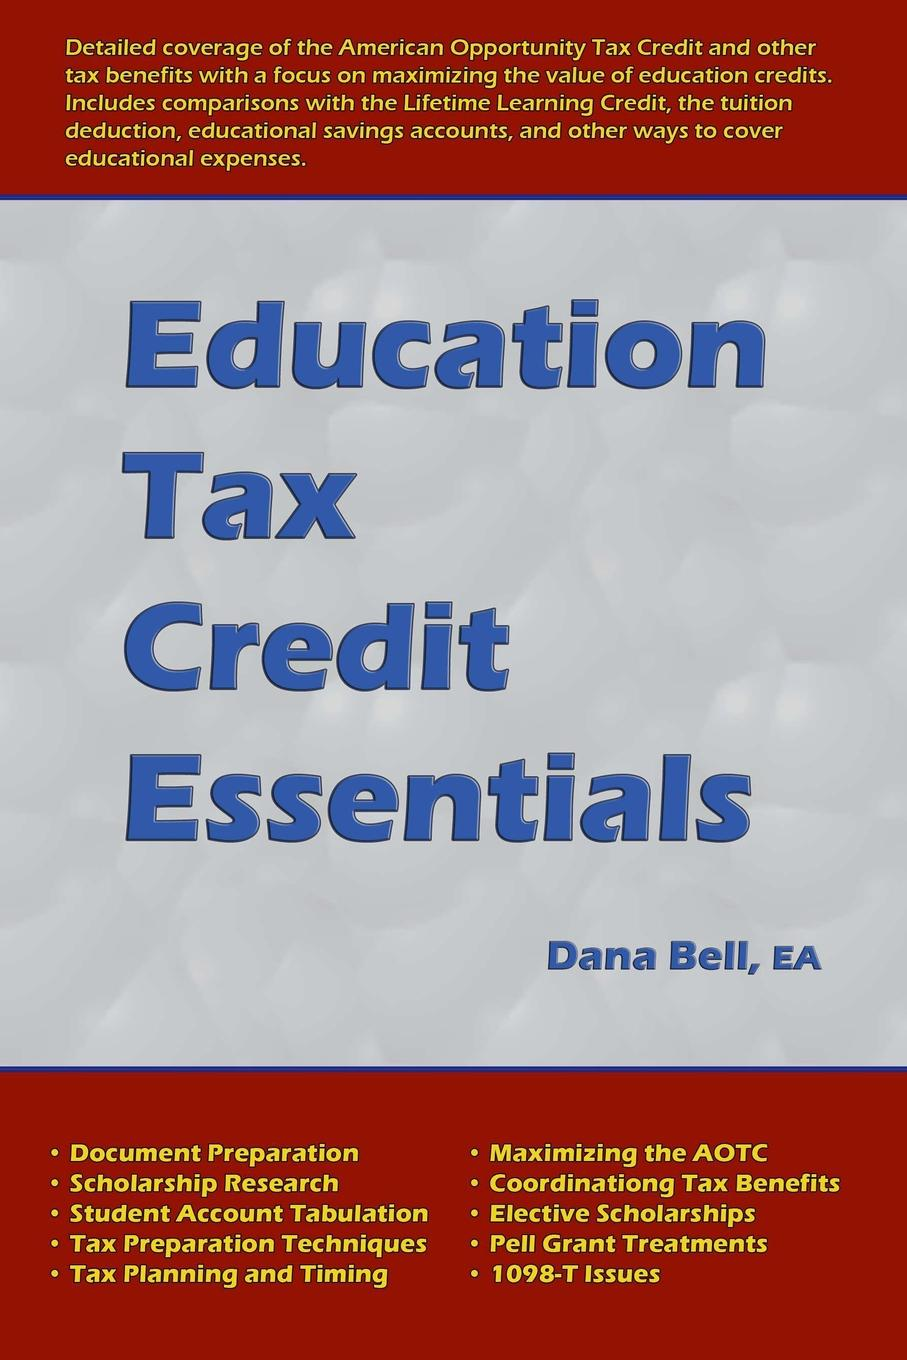 Dana Bell Education Tax Credit Essentials seid yimer returns to education and wage differential